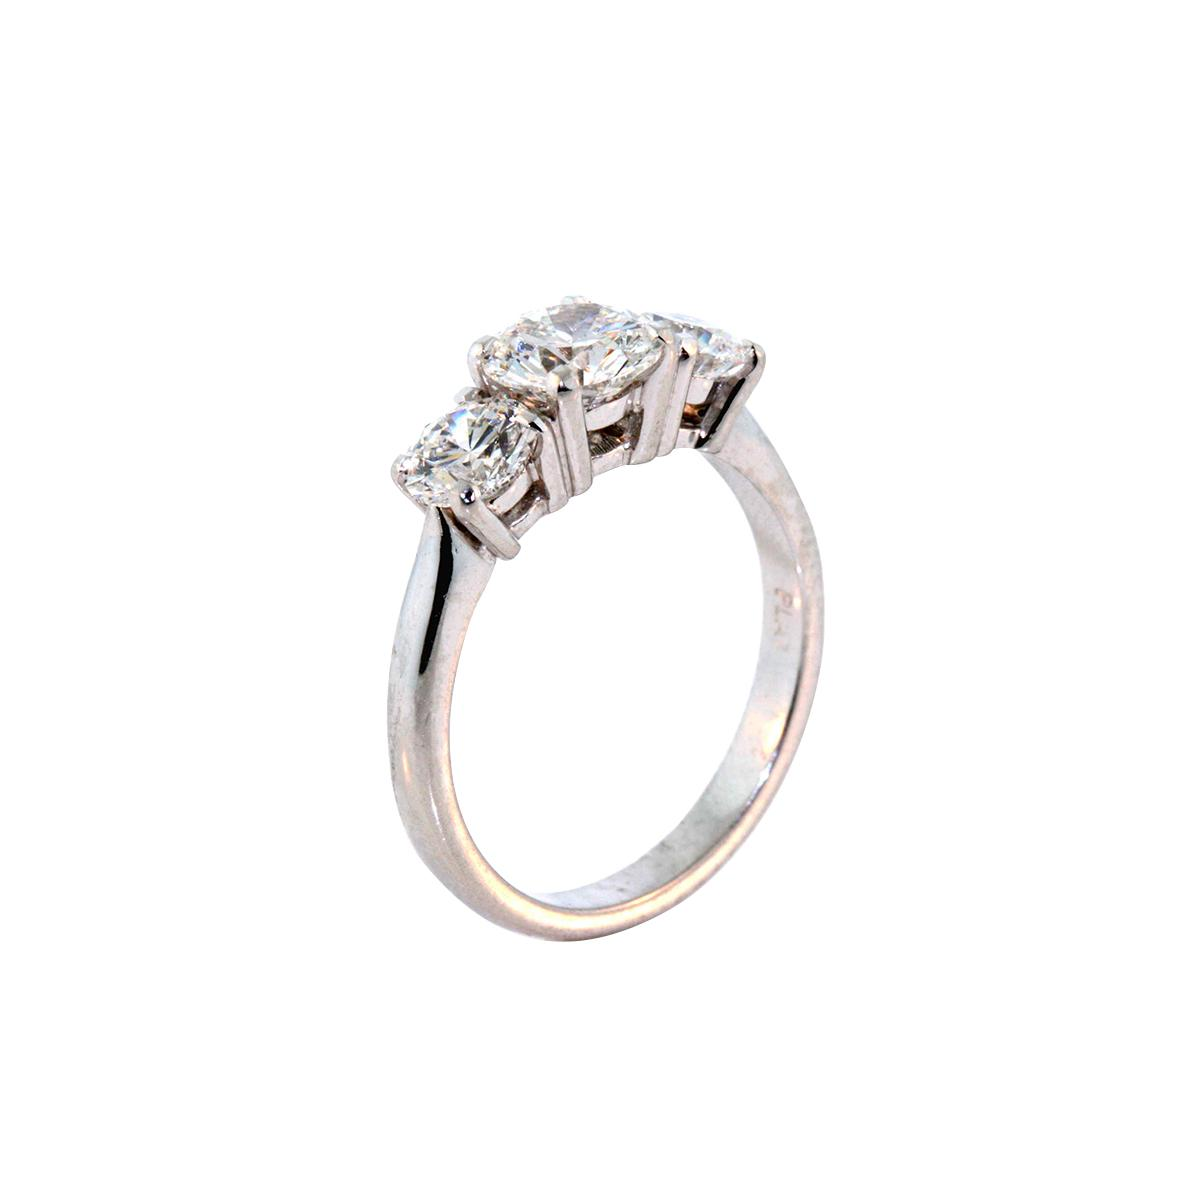 012017-1 Auckland Diamond Engagement Ring